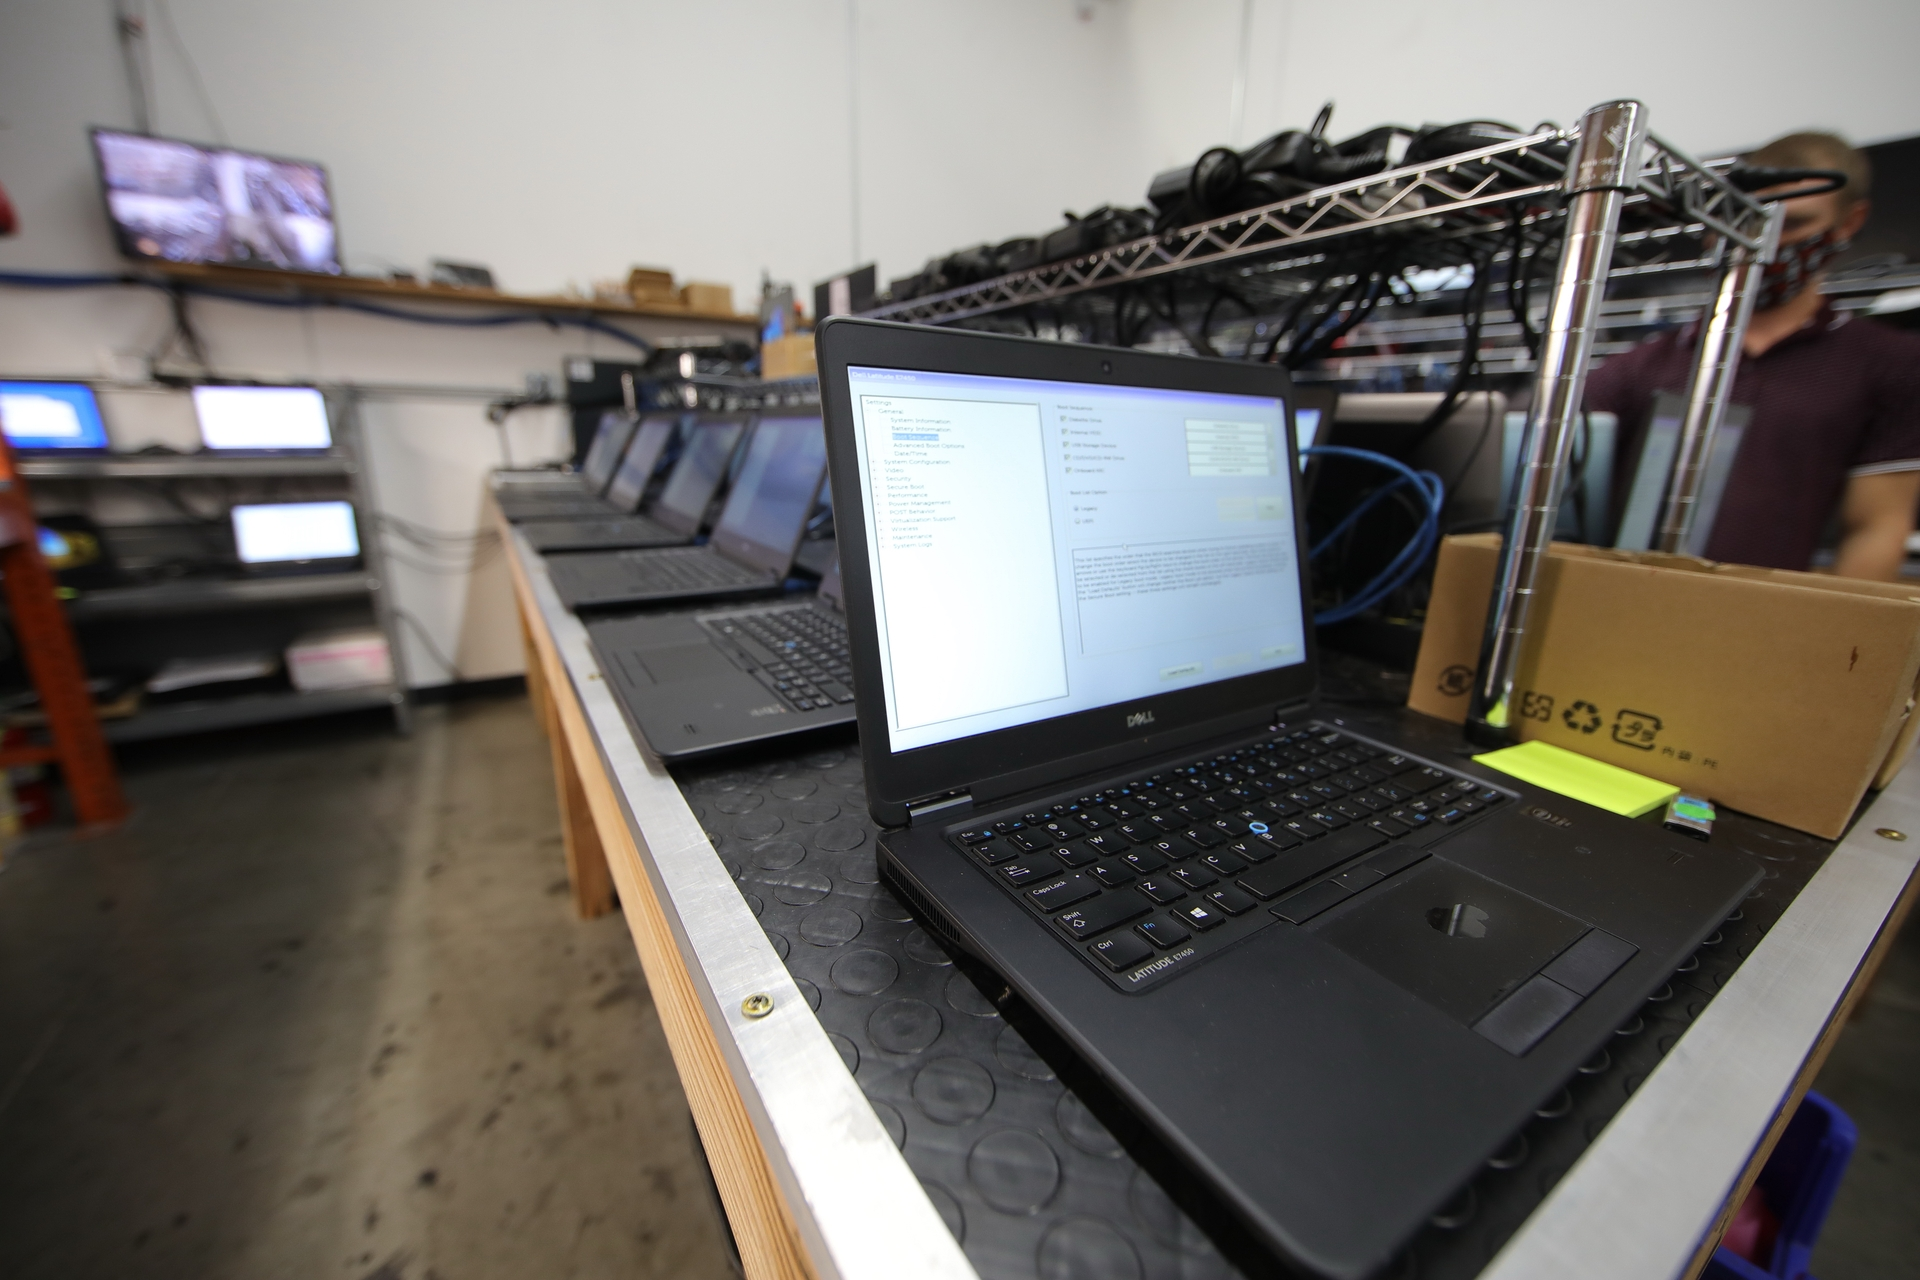 Edison International recently donated 600 refurbished laptops to the California Bridging the Digital Divide Fund.